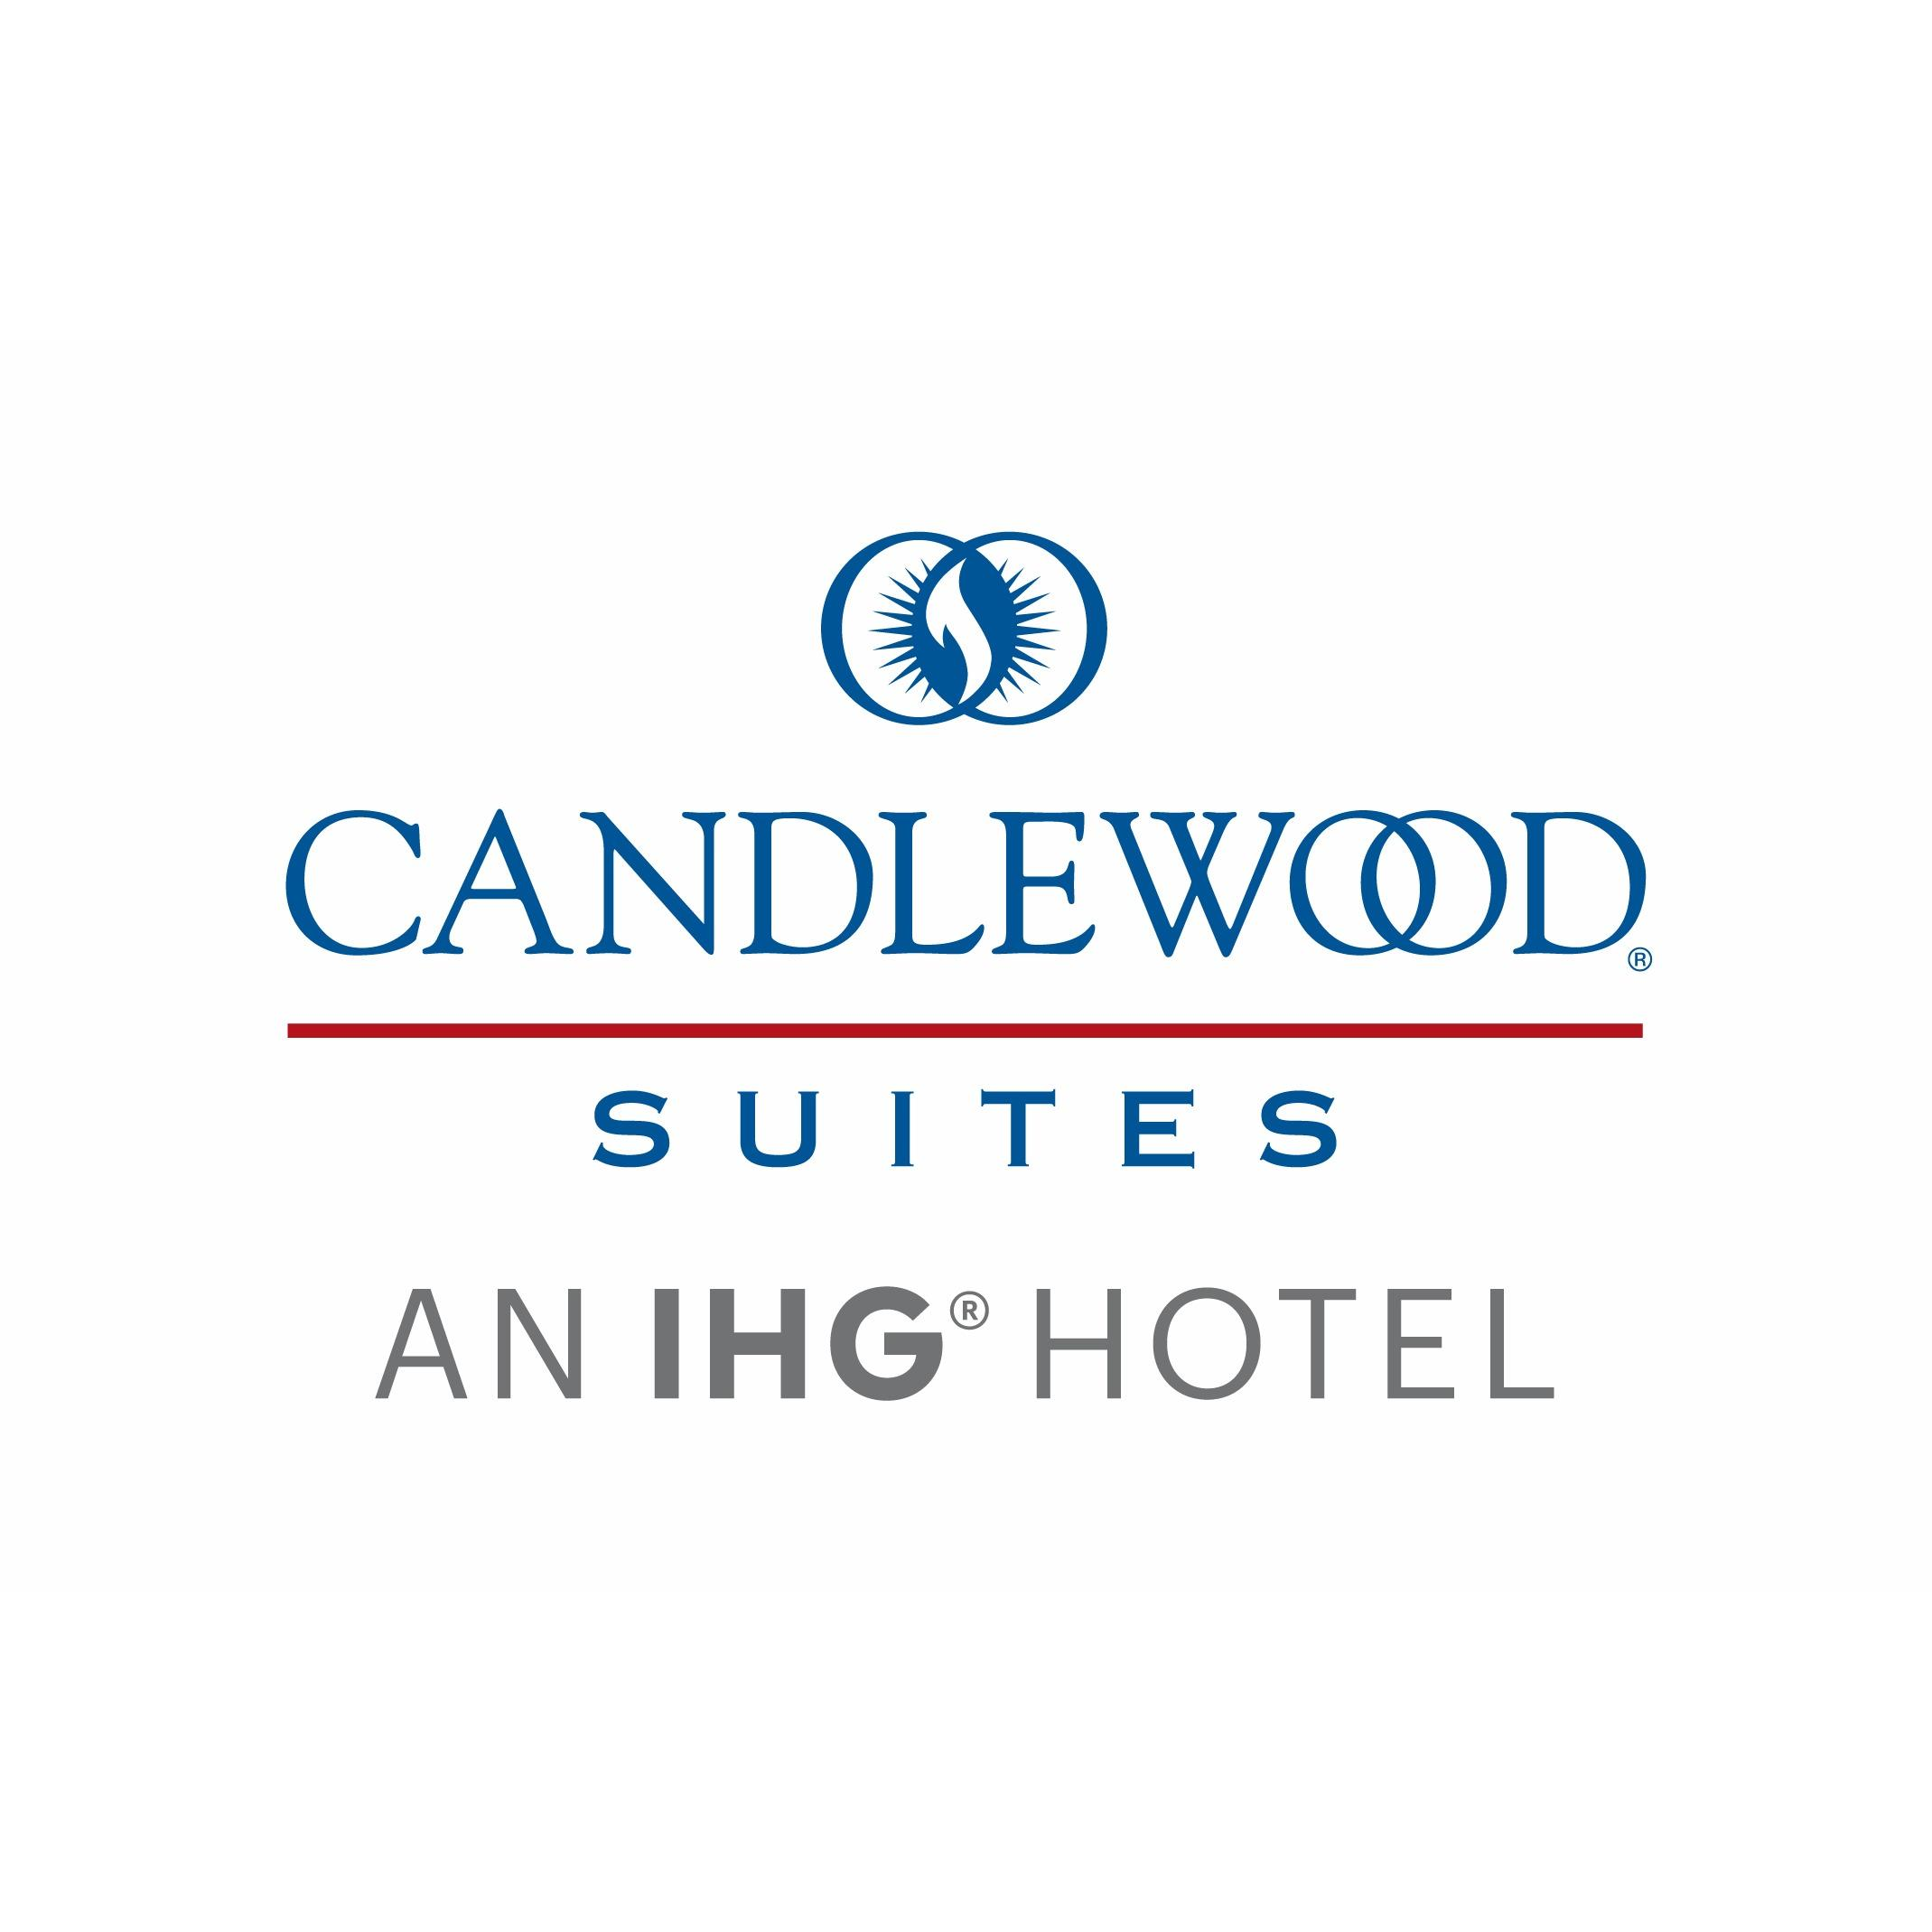 Candlewood Suites Washington North - Washington, PA - Hotels & Motels